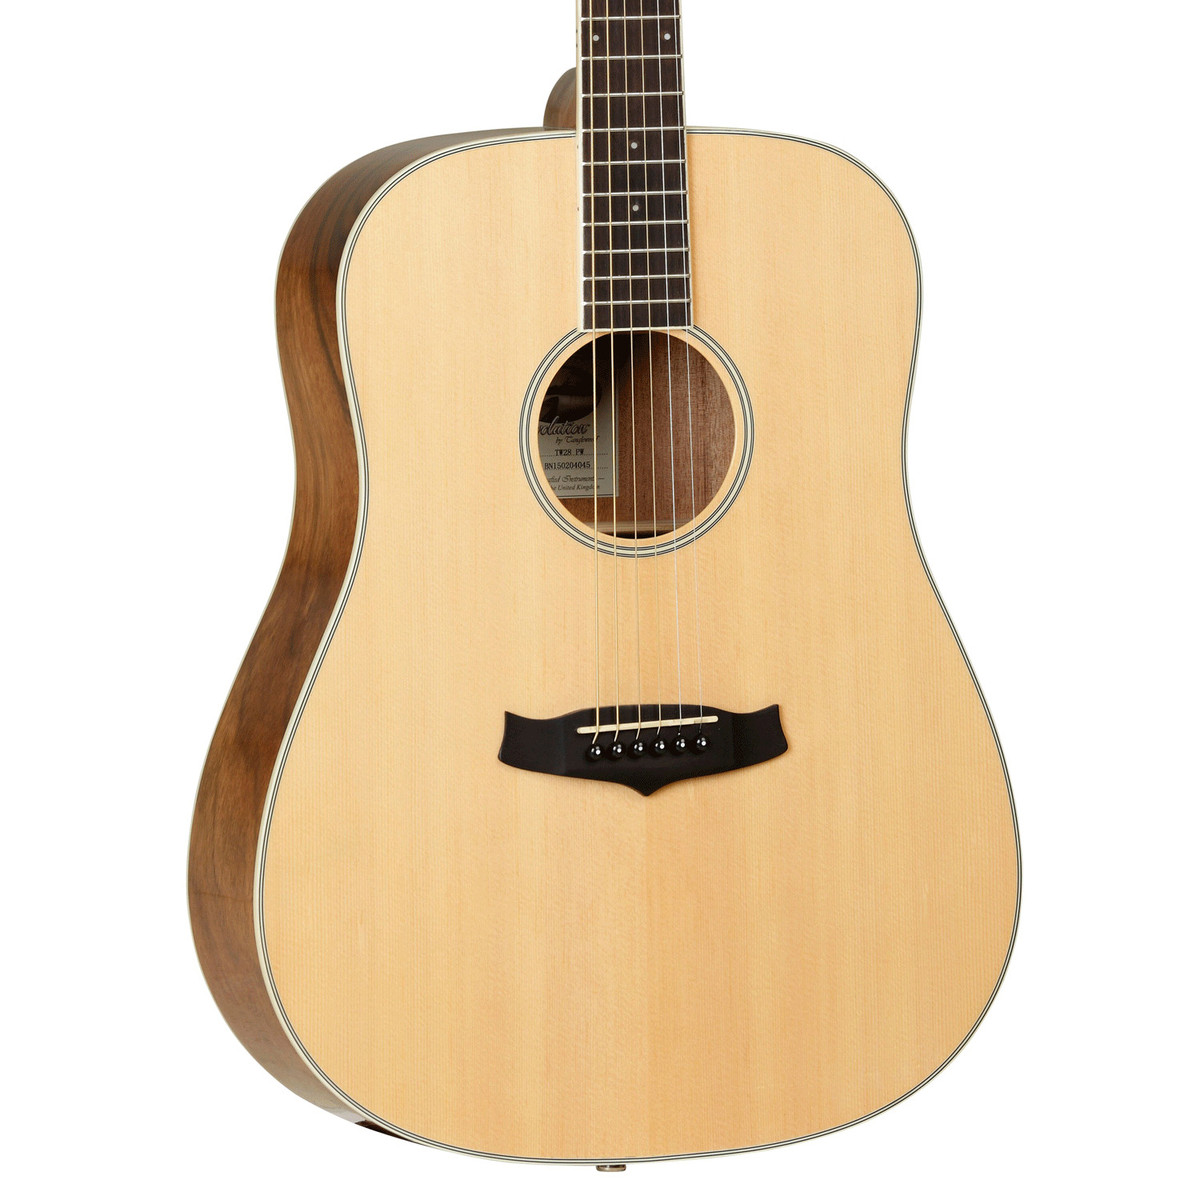 Tanglewood evolution deluxe tw28 pw acoustic guitar at for The tanglewood